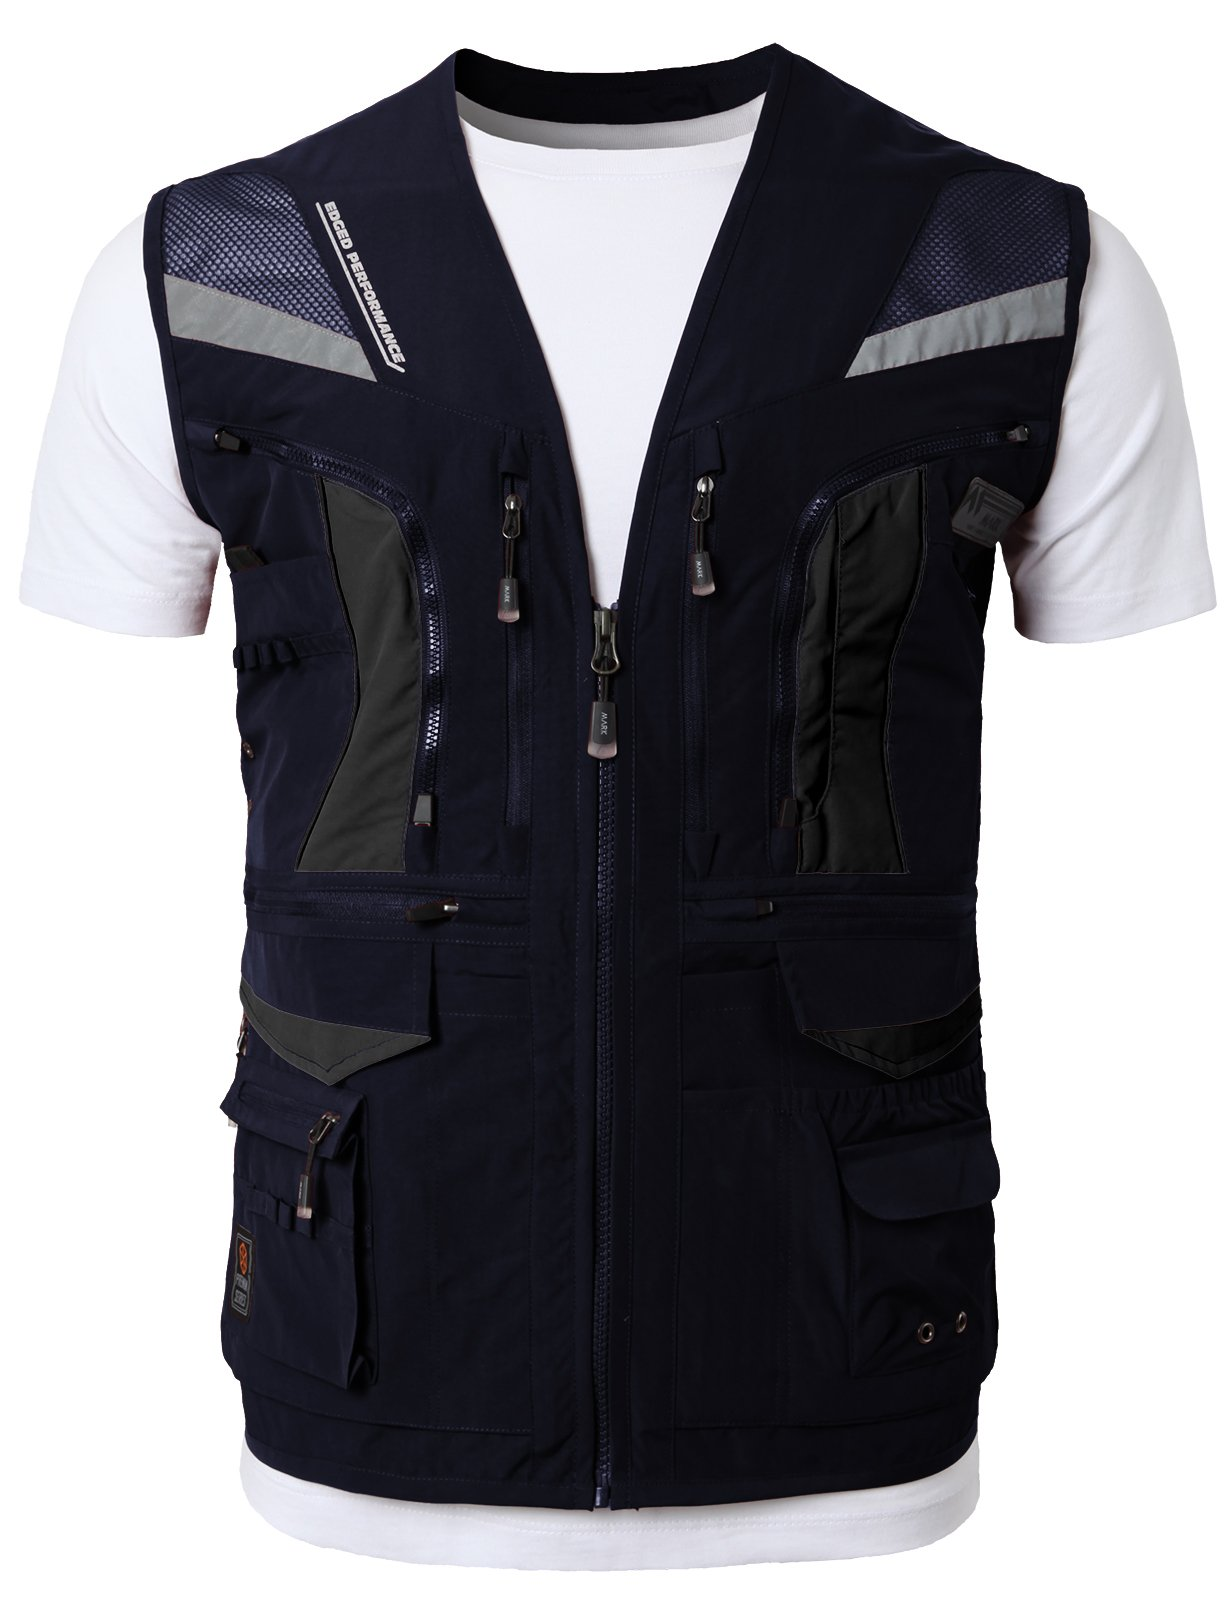 H2H Mens Casual Work Utility Hunting Fishing Vest Travels Sports Mesh Jacket with Multi-Pockets Navy US L/Asia XL (KMOV0144) by H2H (Image #2)